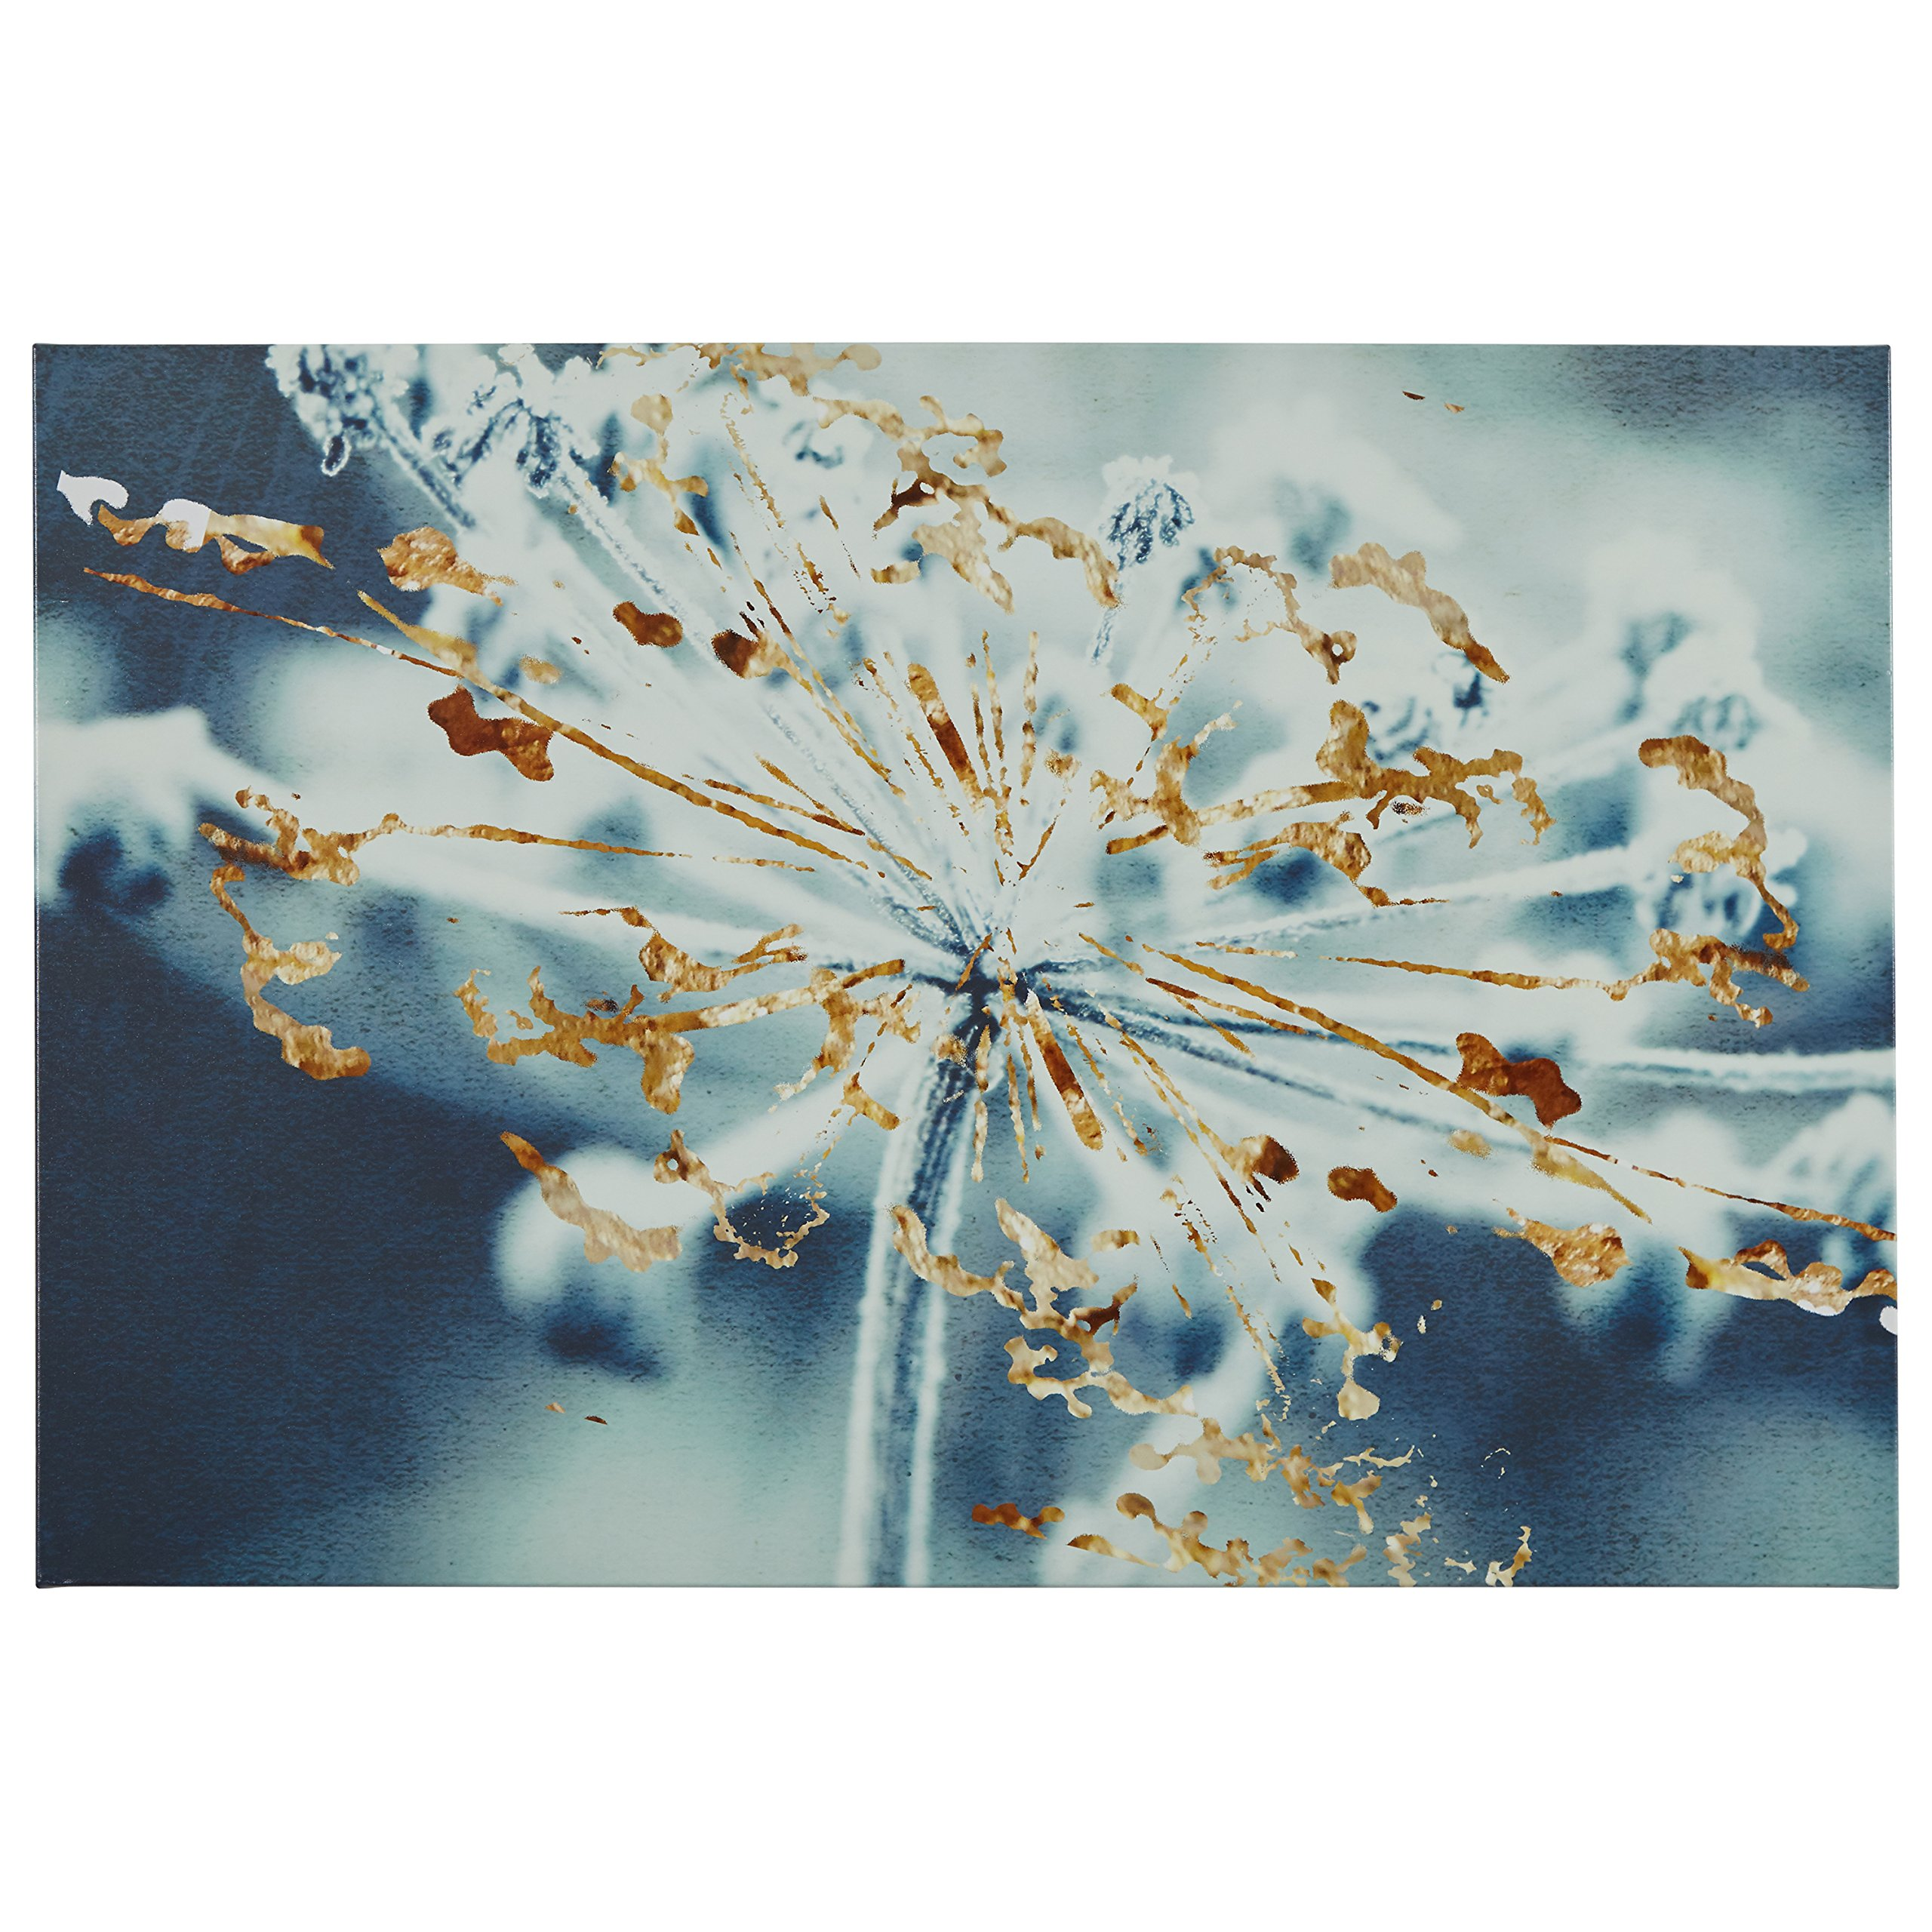 Turquoise Blue and Gold Metallic Flower Duotone Photo Print, 45'' x 30'' by Rivet